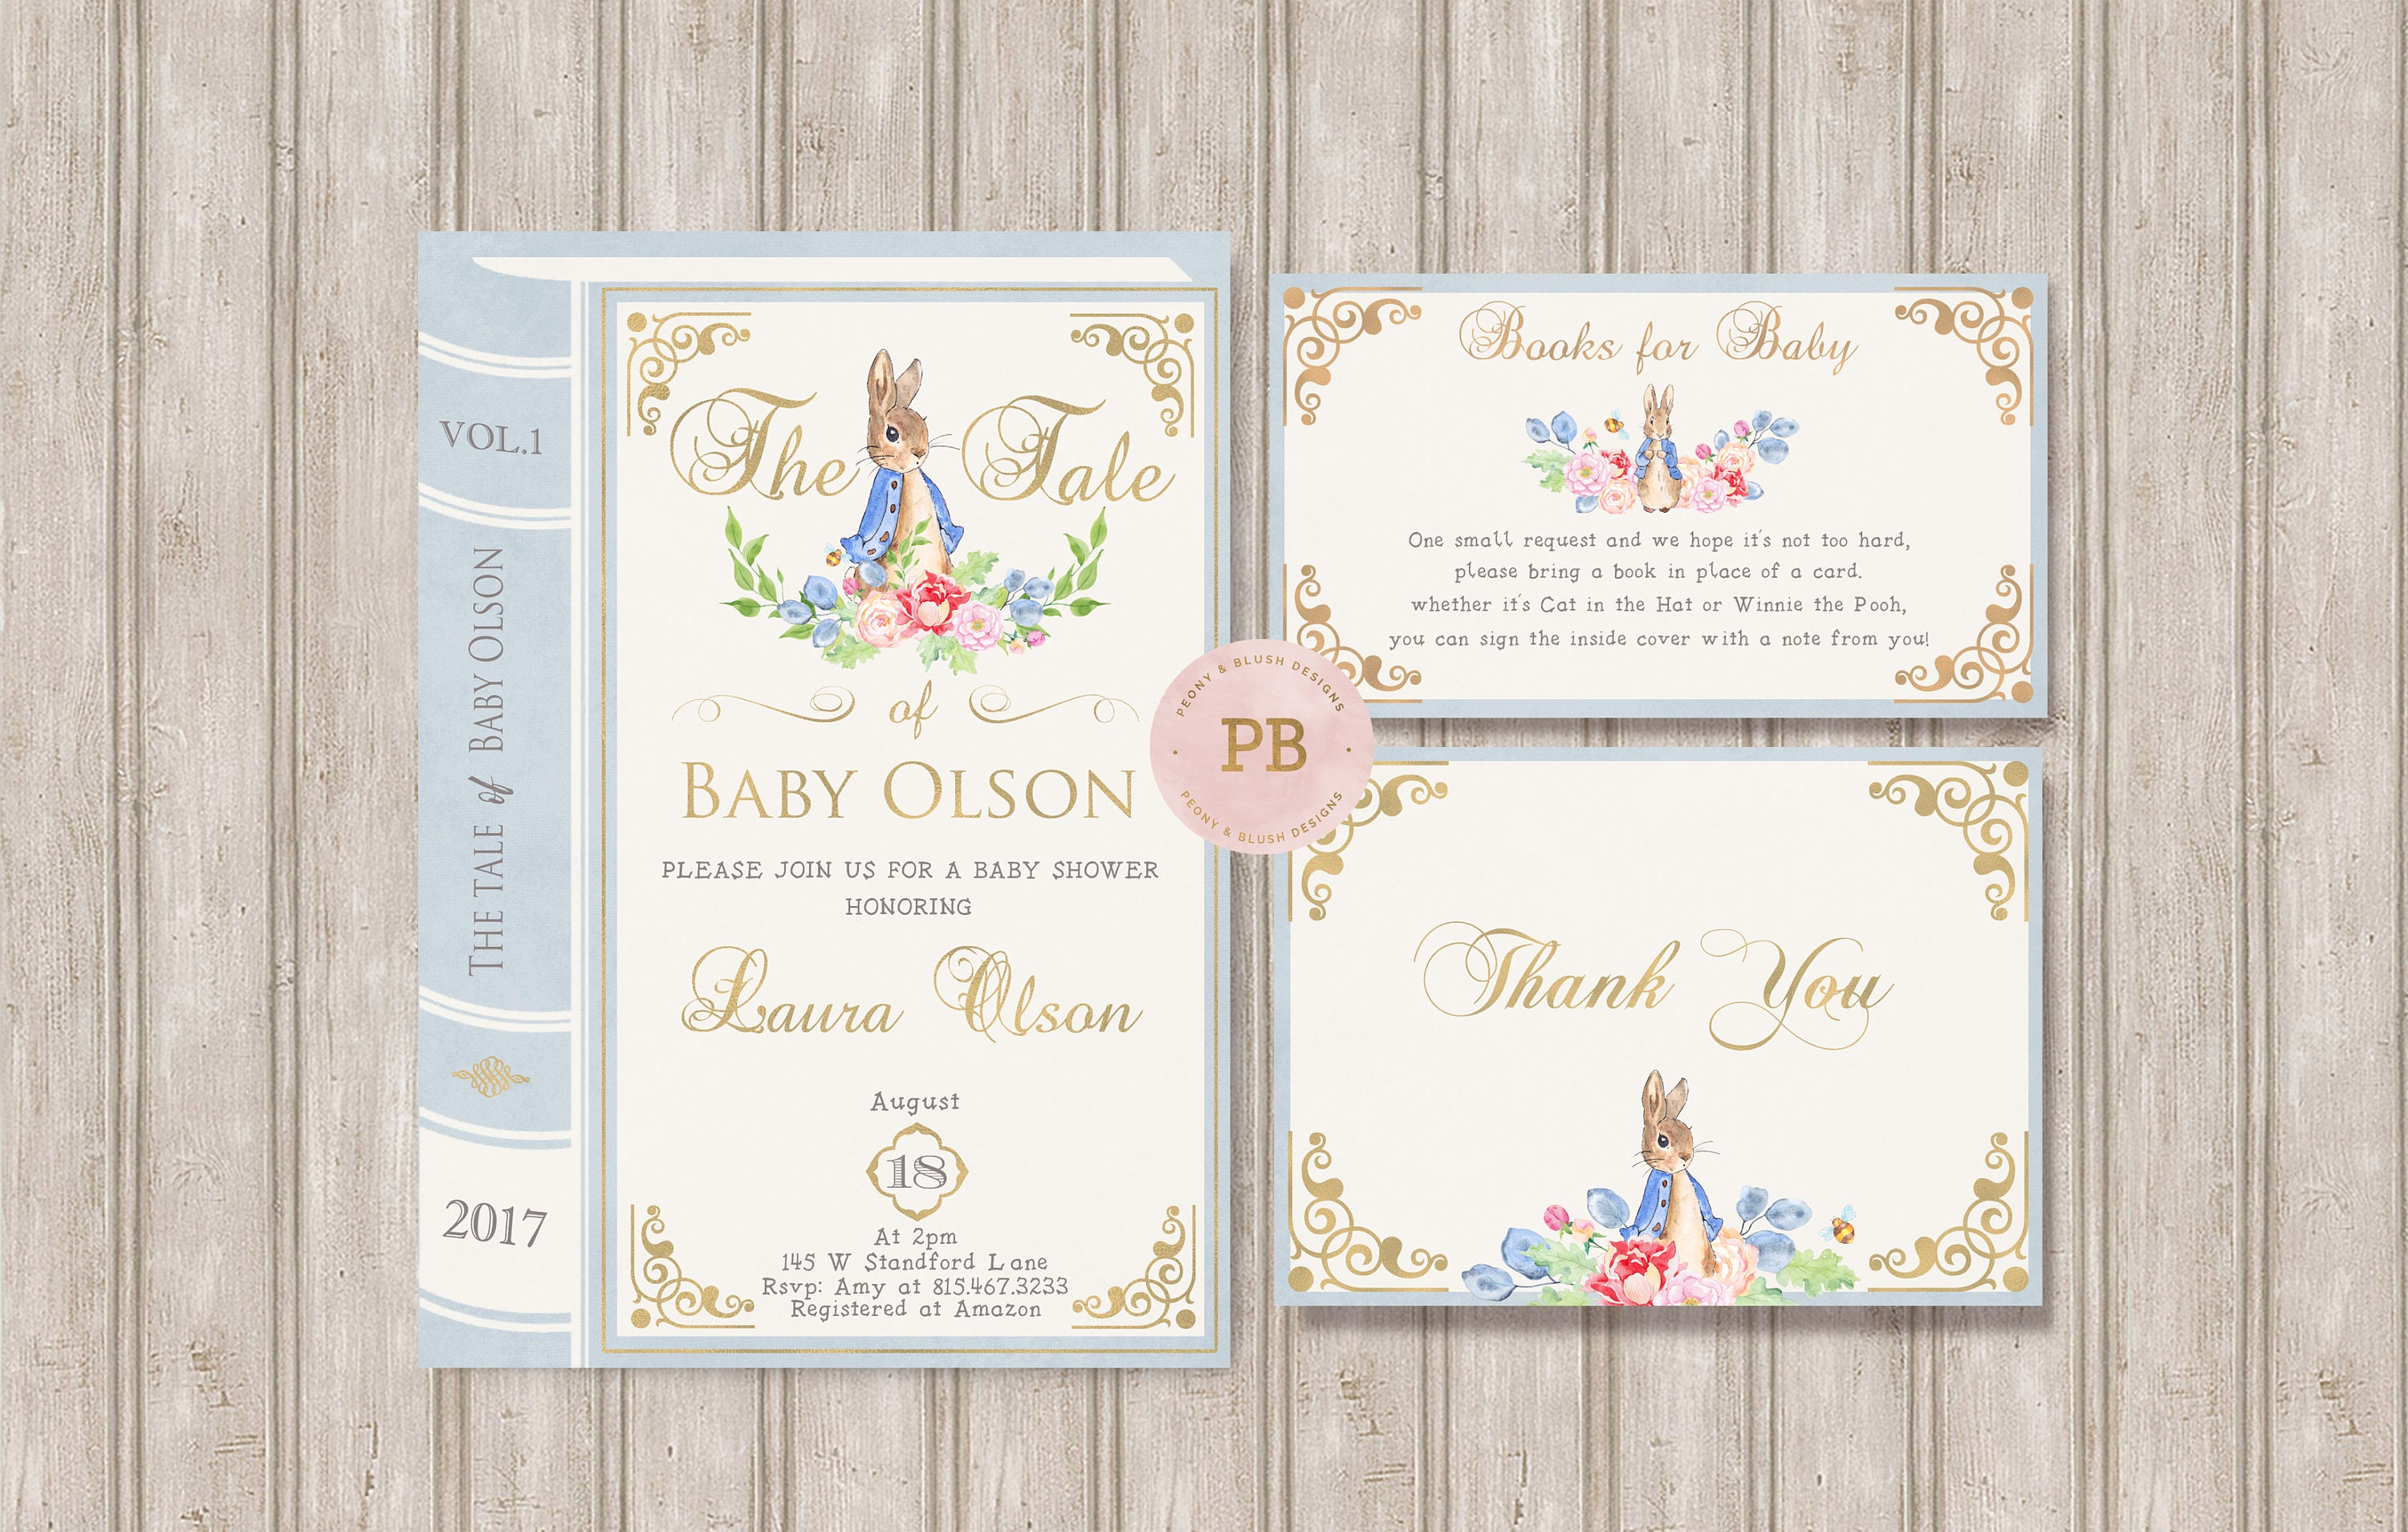 and collection beautiful invitations party pin graphic bunny vintagelooking baby invitation lettuce peter rabbit shower